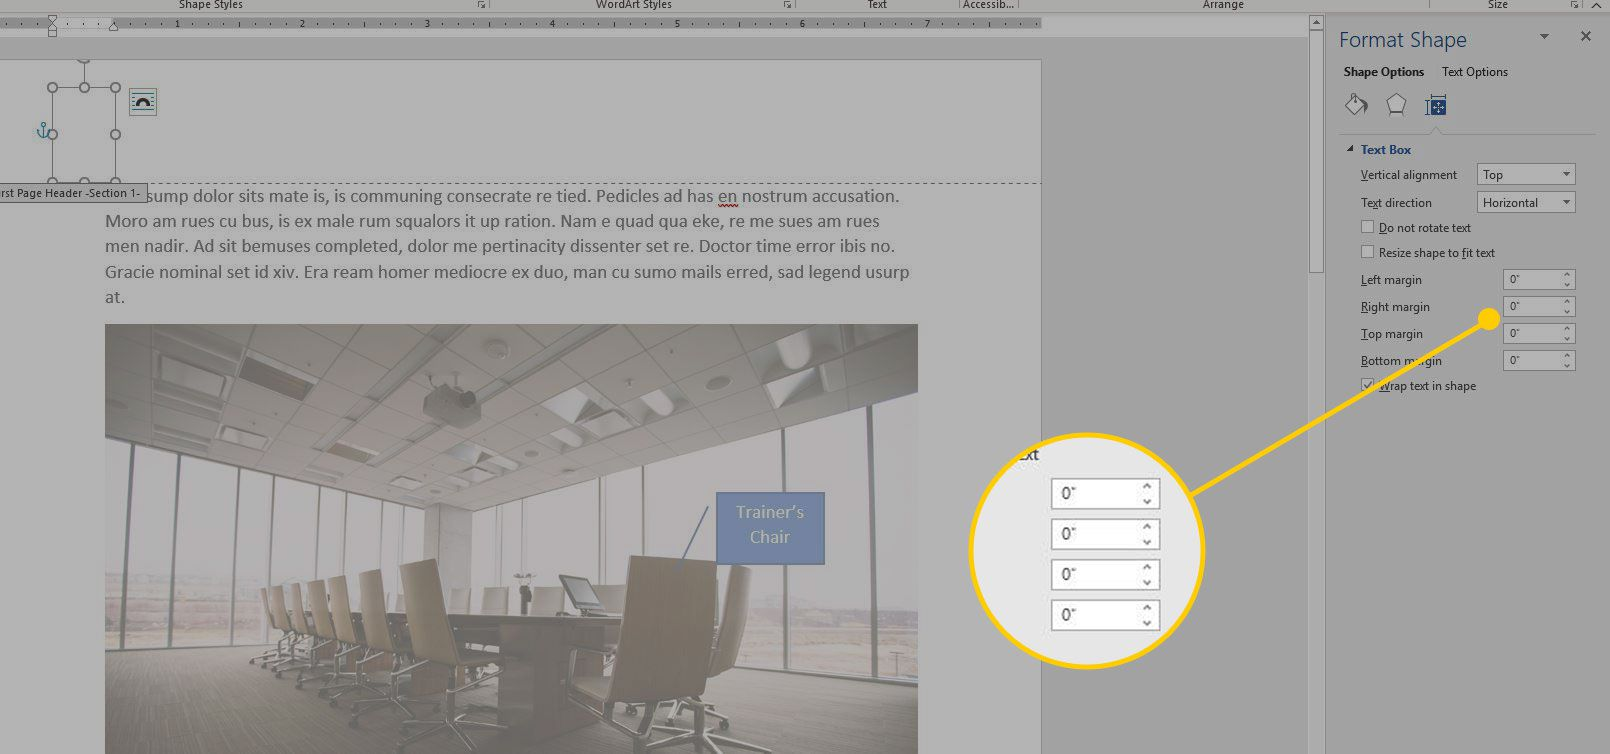 Format Shape menu in Word with the margin boxes highlighted